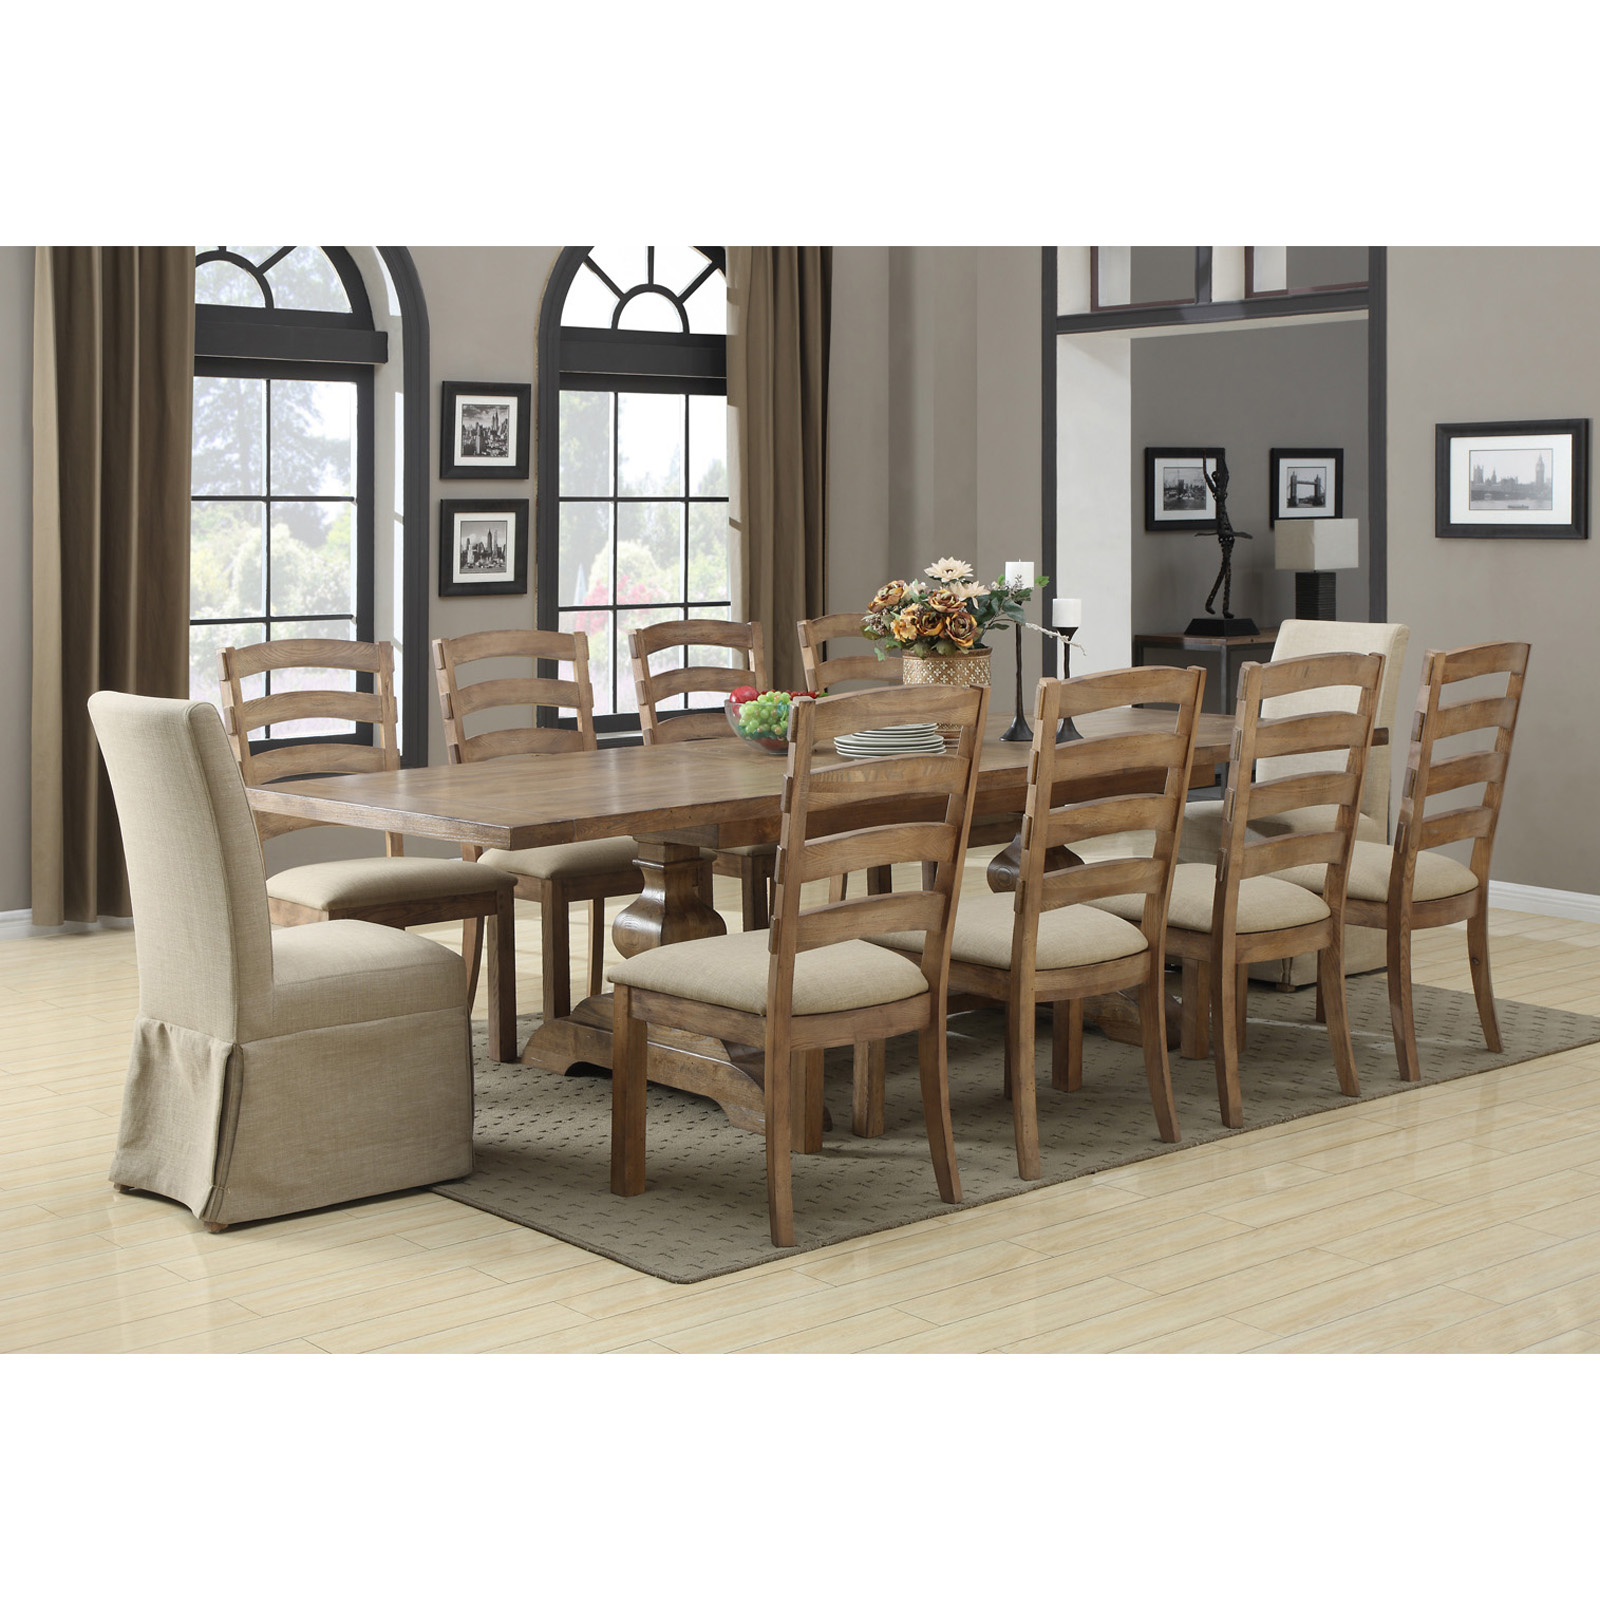 Emerald home belair 11 piece dining table set at hayneedle for 11 piece dining table set